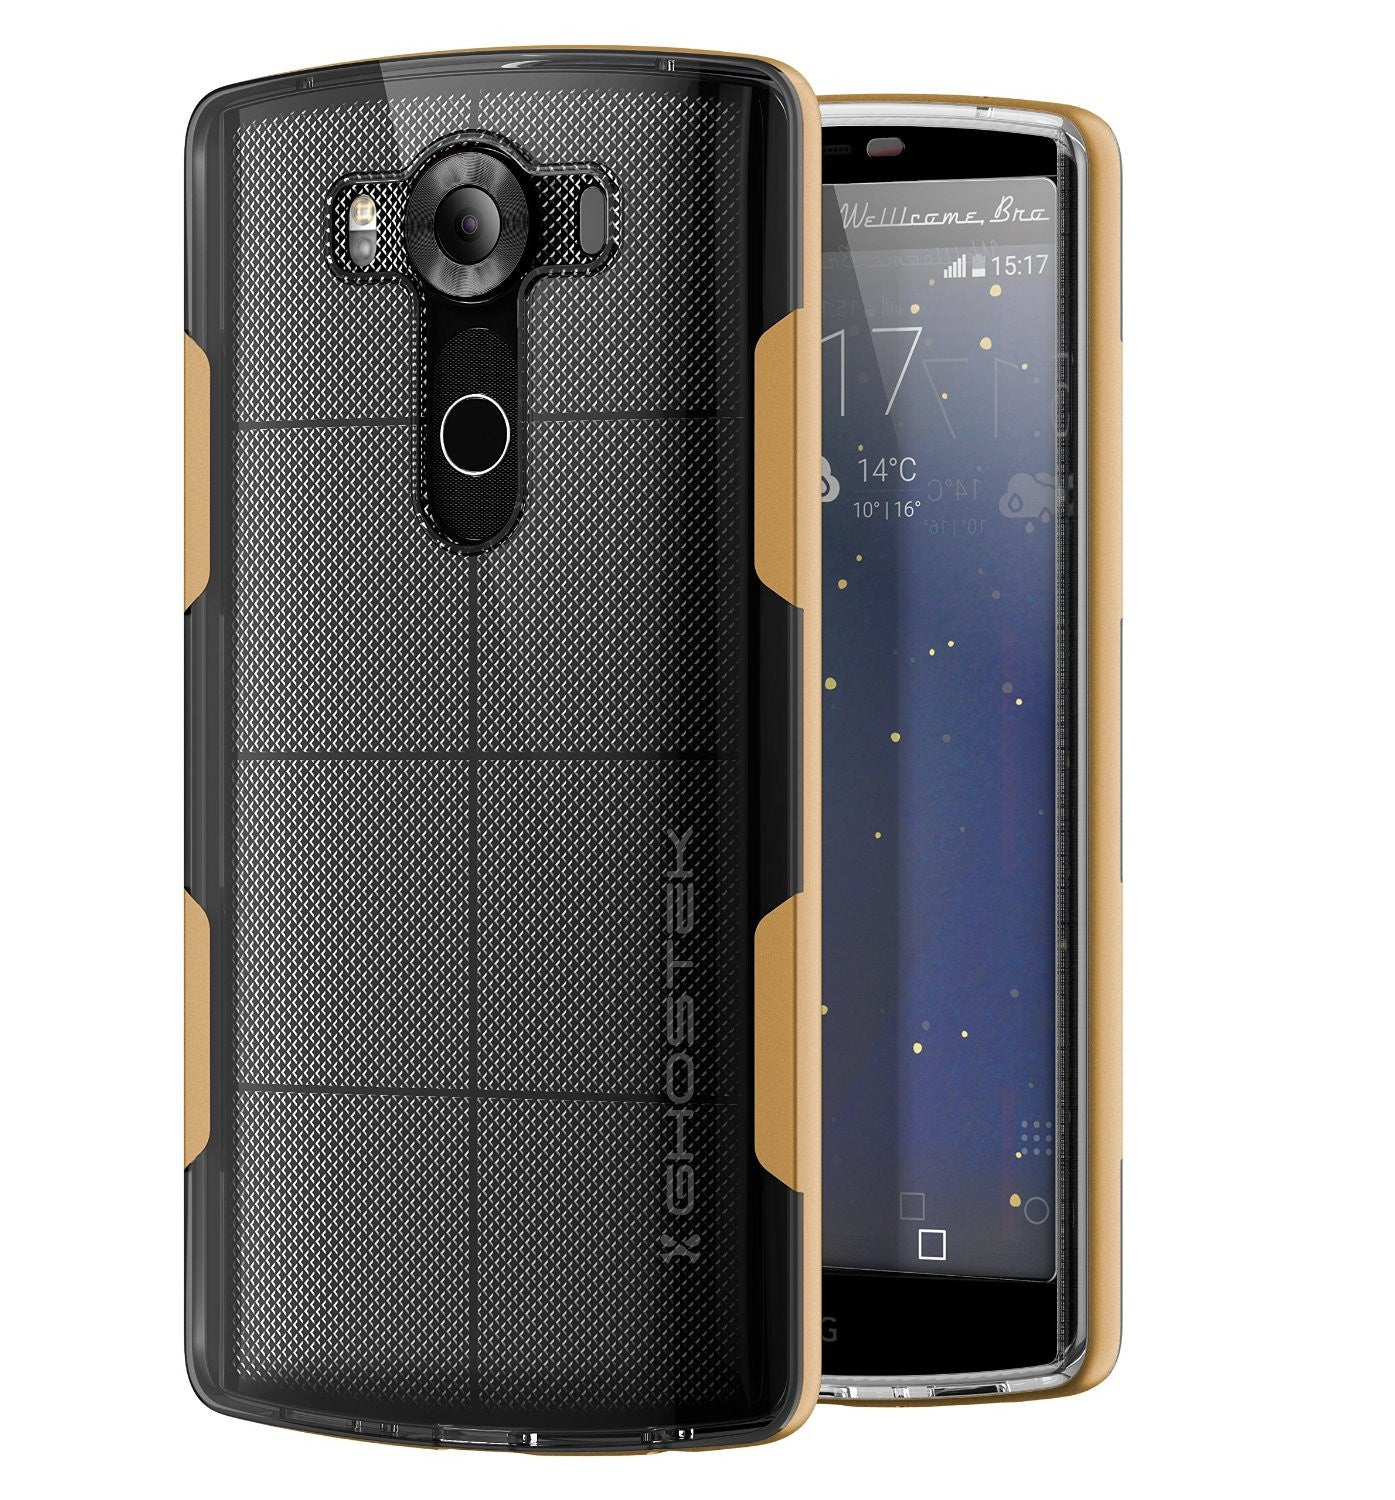 LG V10 Case, Ghostek® Cloak Gold Slim Hybrid Impact Armor Cover | Lifetime Warranty Exchange